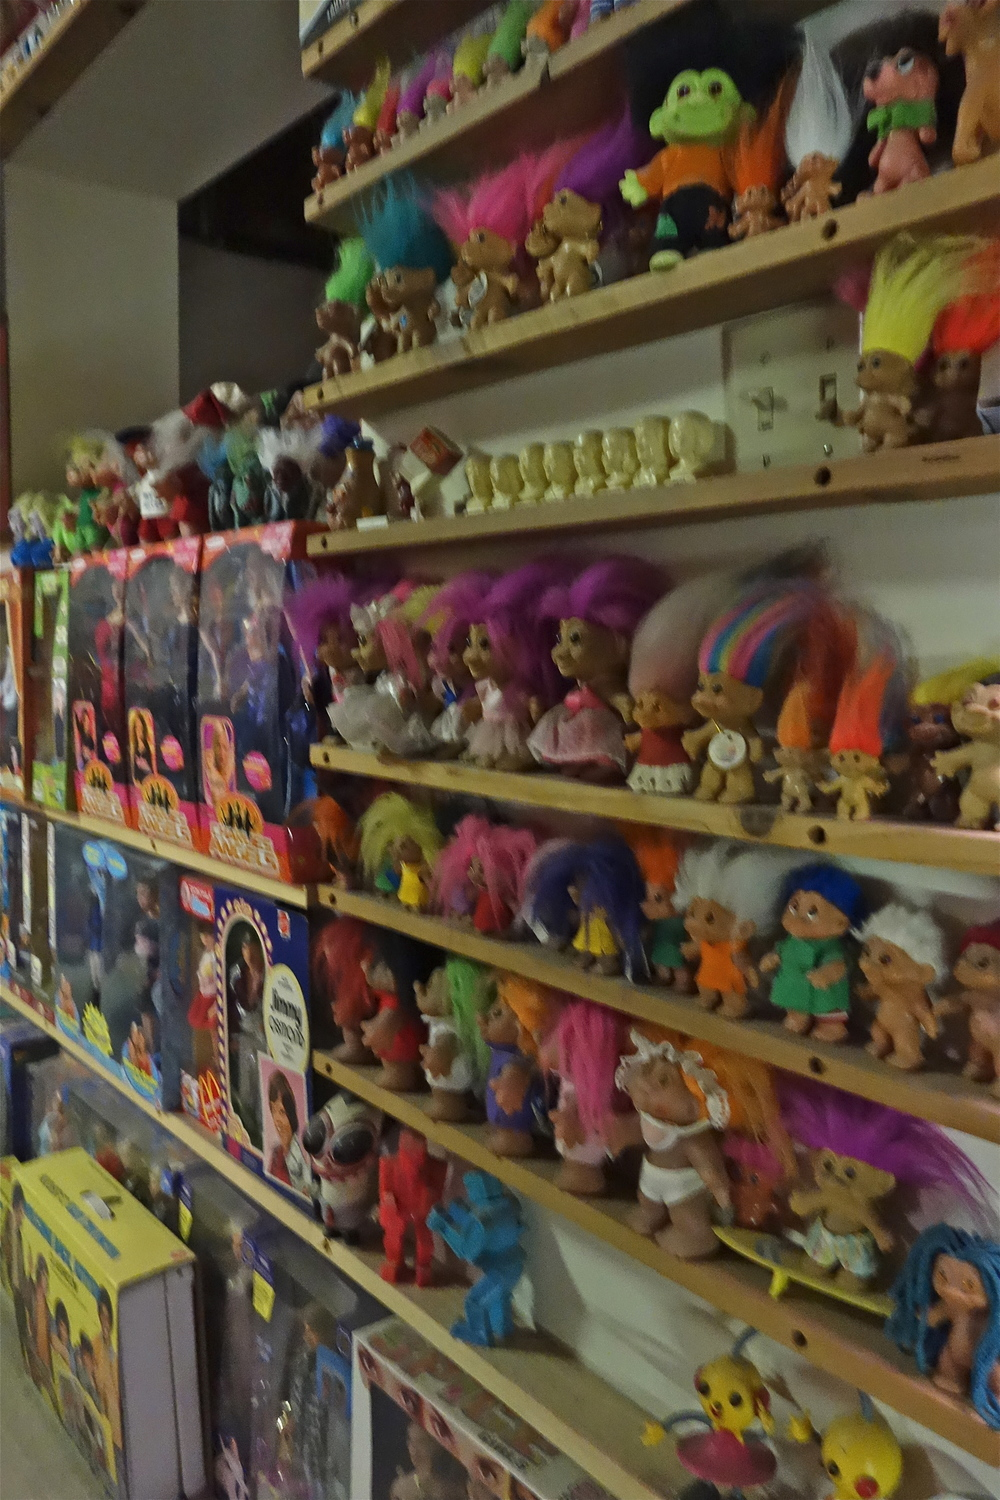 Trolls are one of many colorful collections on display in Rose's loft.